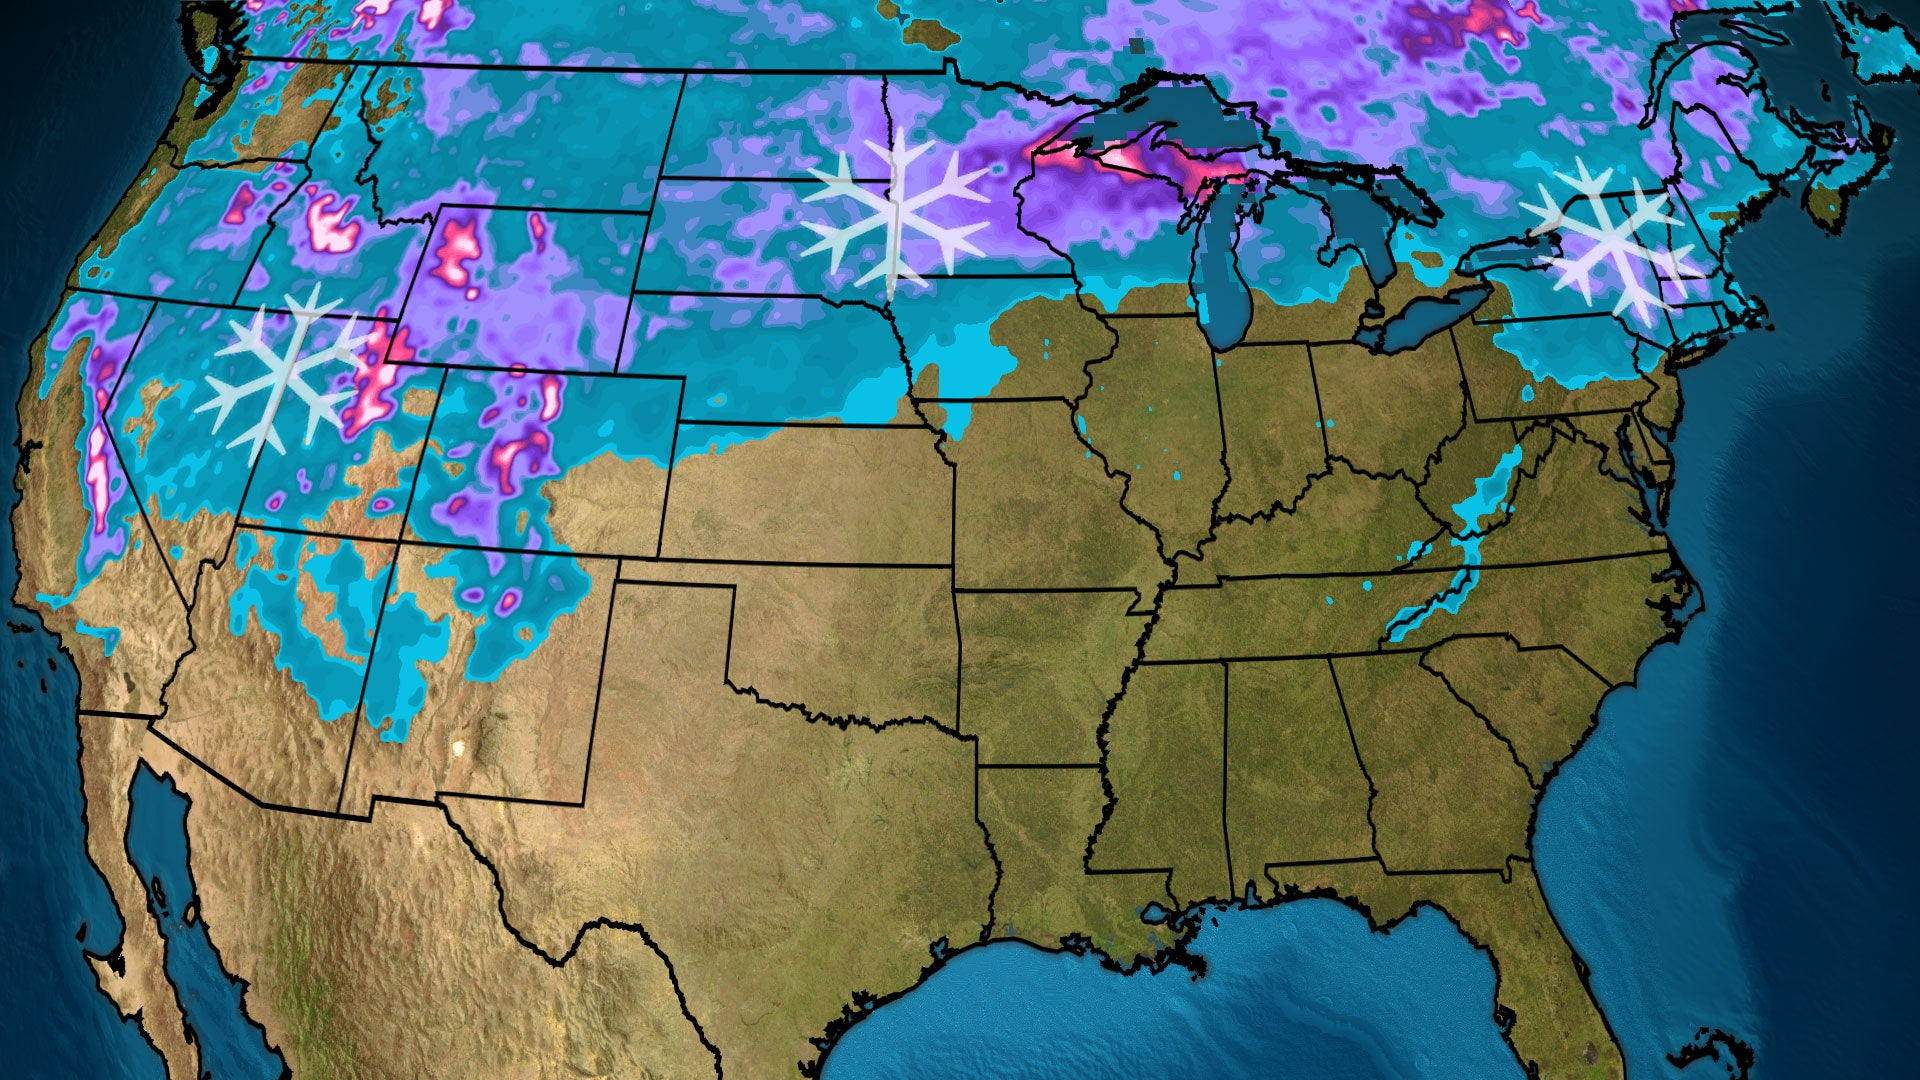 December in the Lower 48 Begins With Most Snow Cover in Years